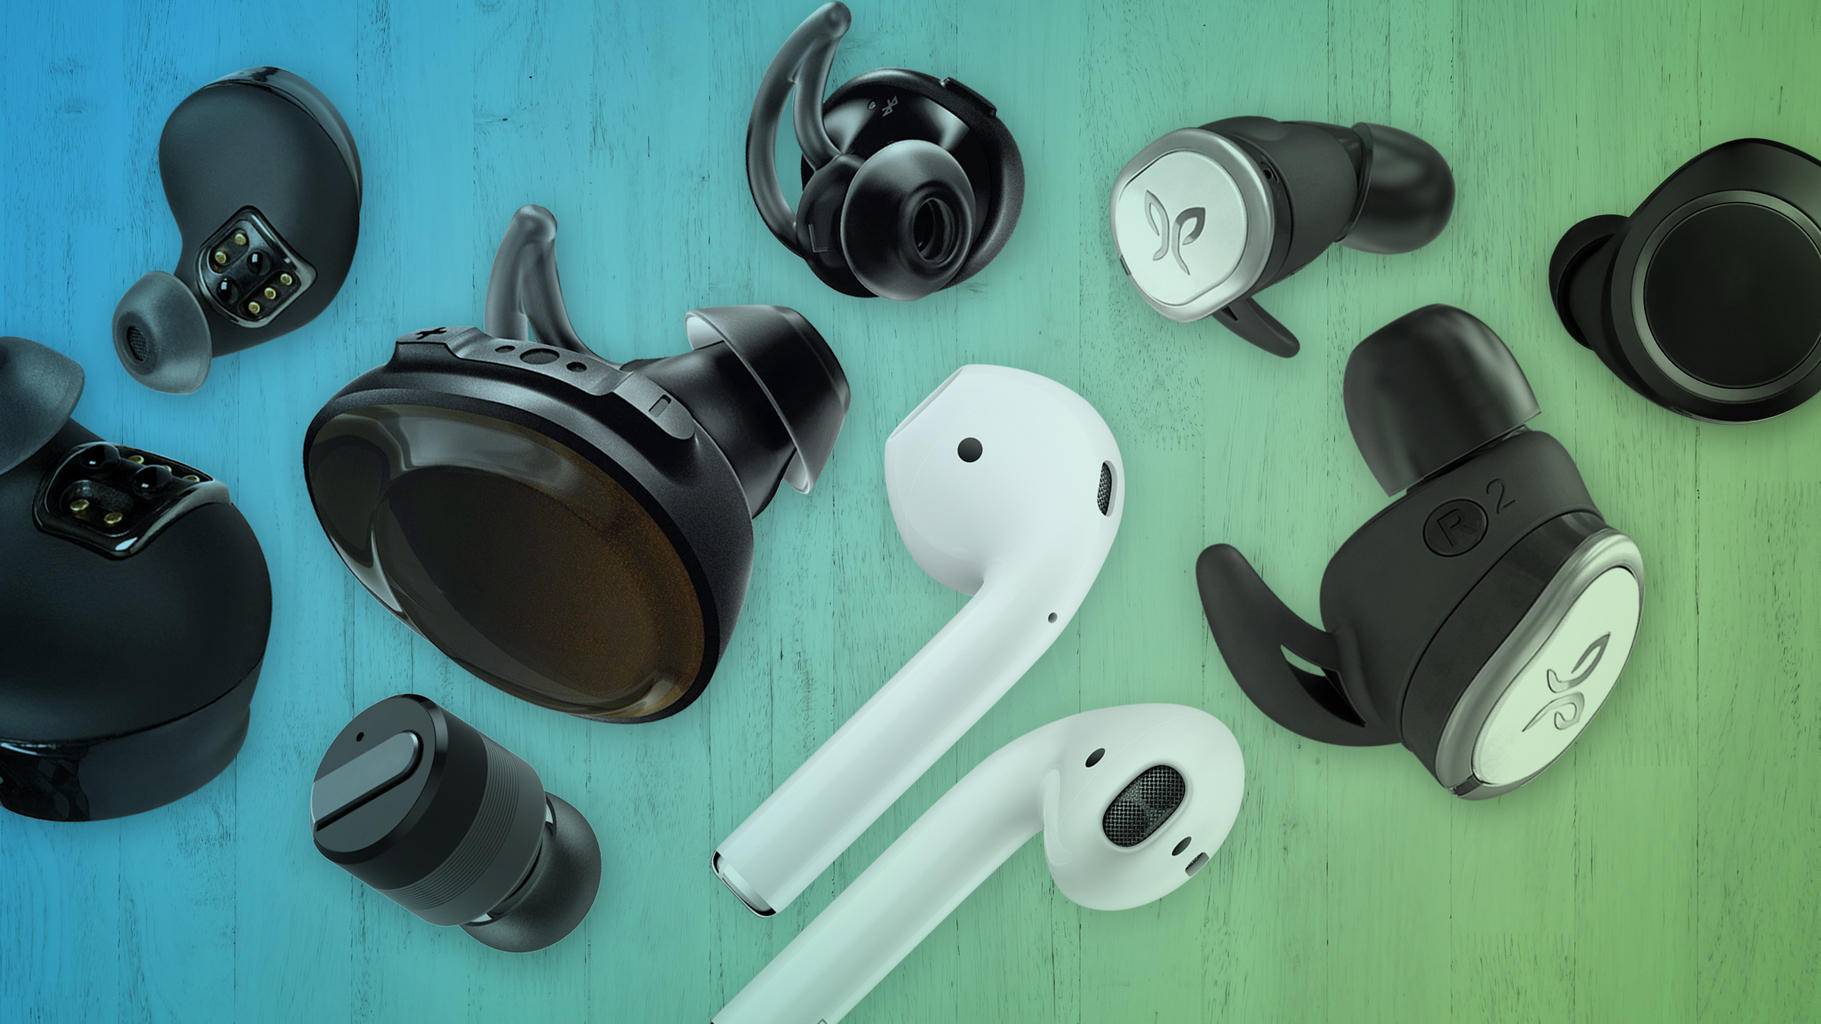 True wireless earphones x5 - earphones skullcandy wireless